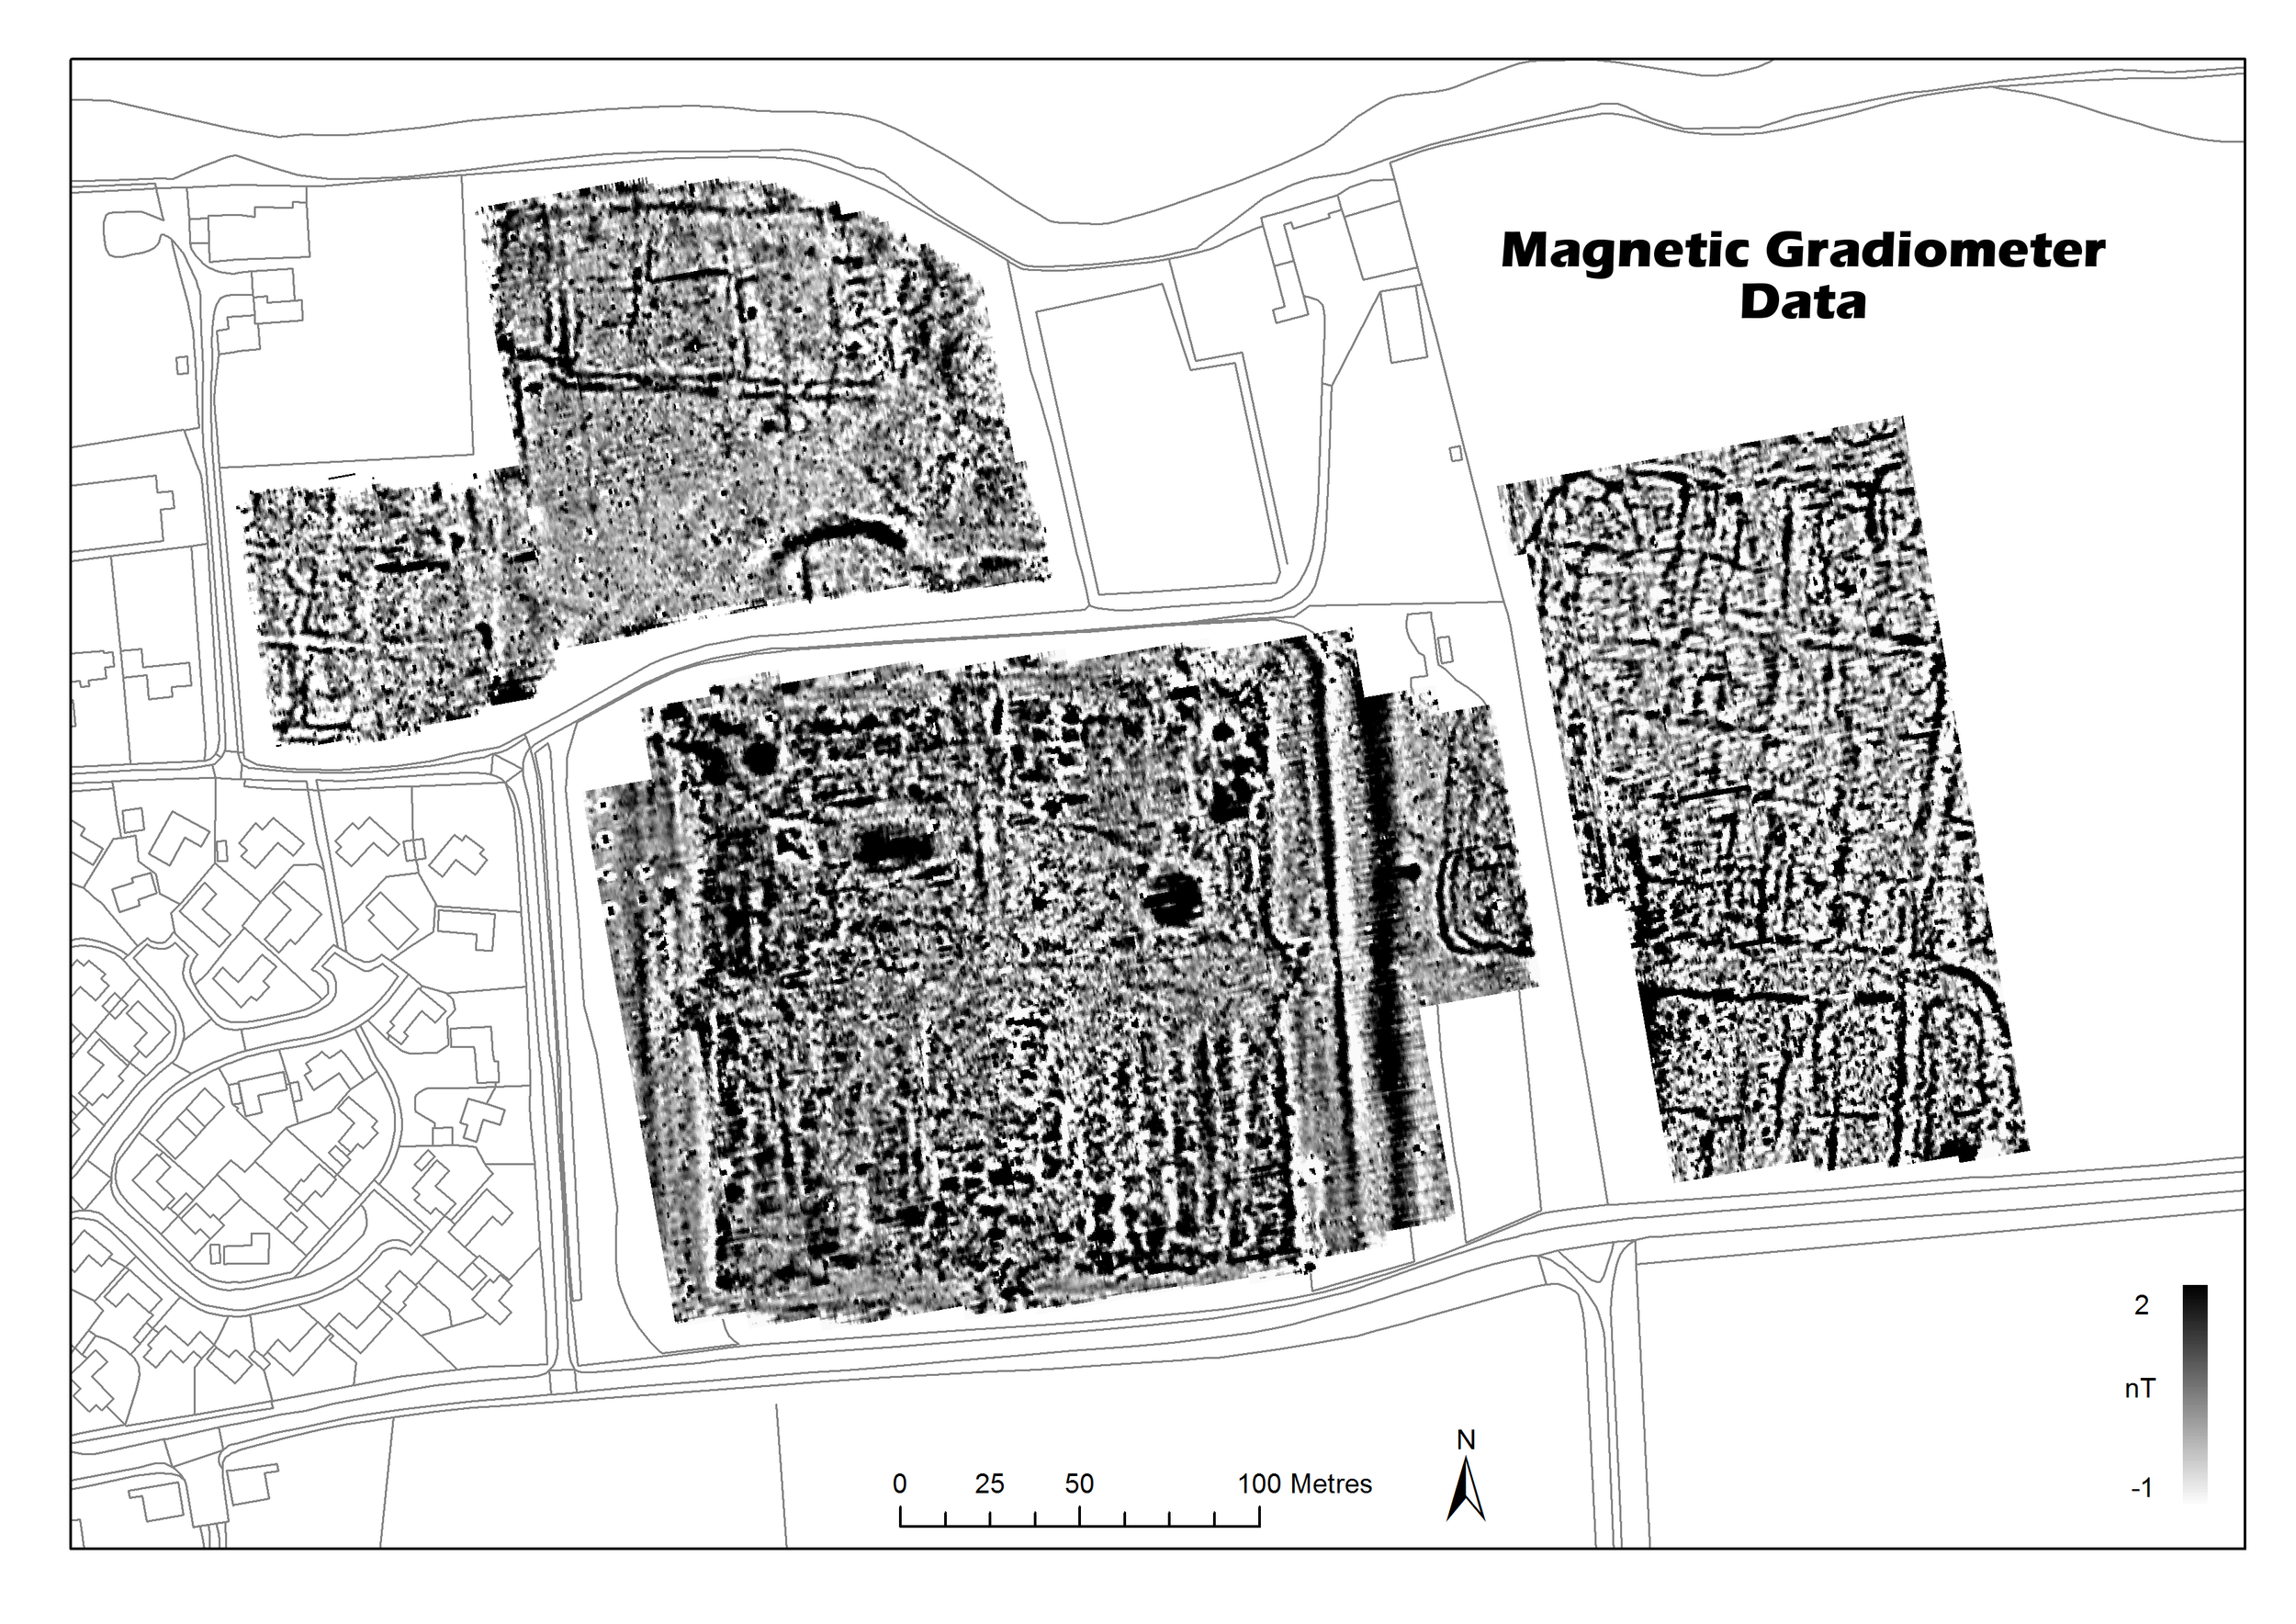 Example of magnetometry data. This survey technique was used to locate areas of interest at Brancaster Roman Fort.